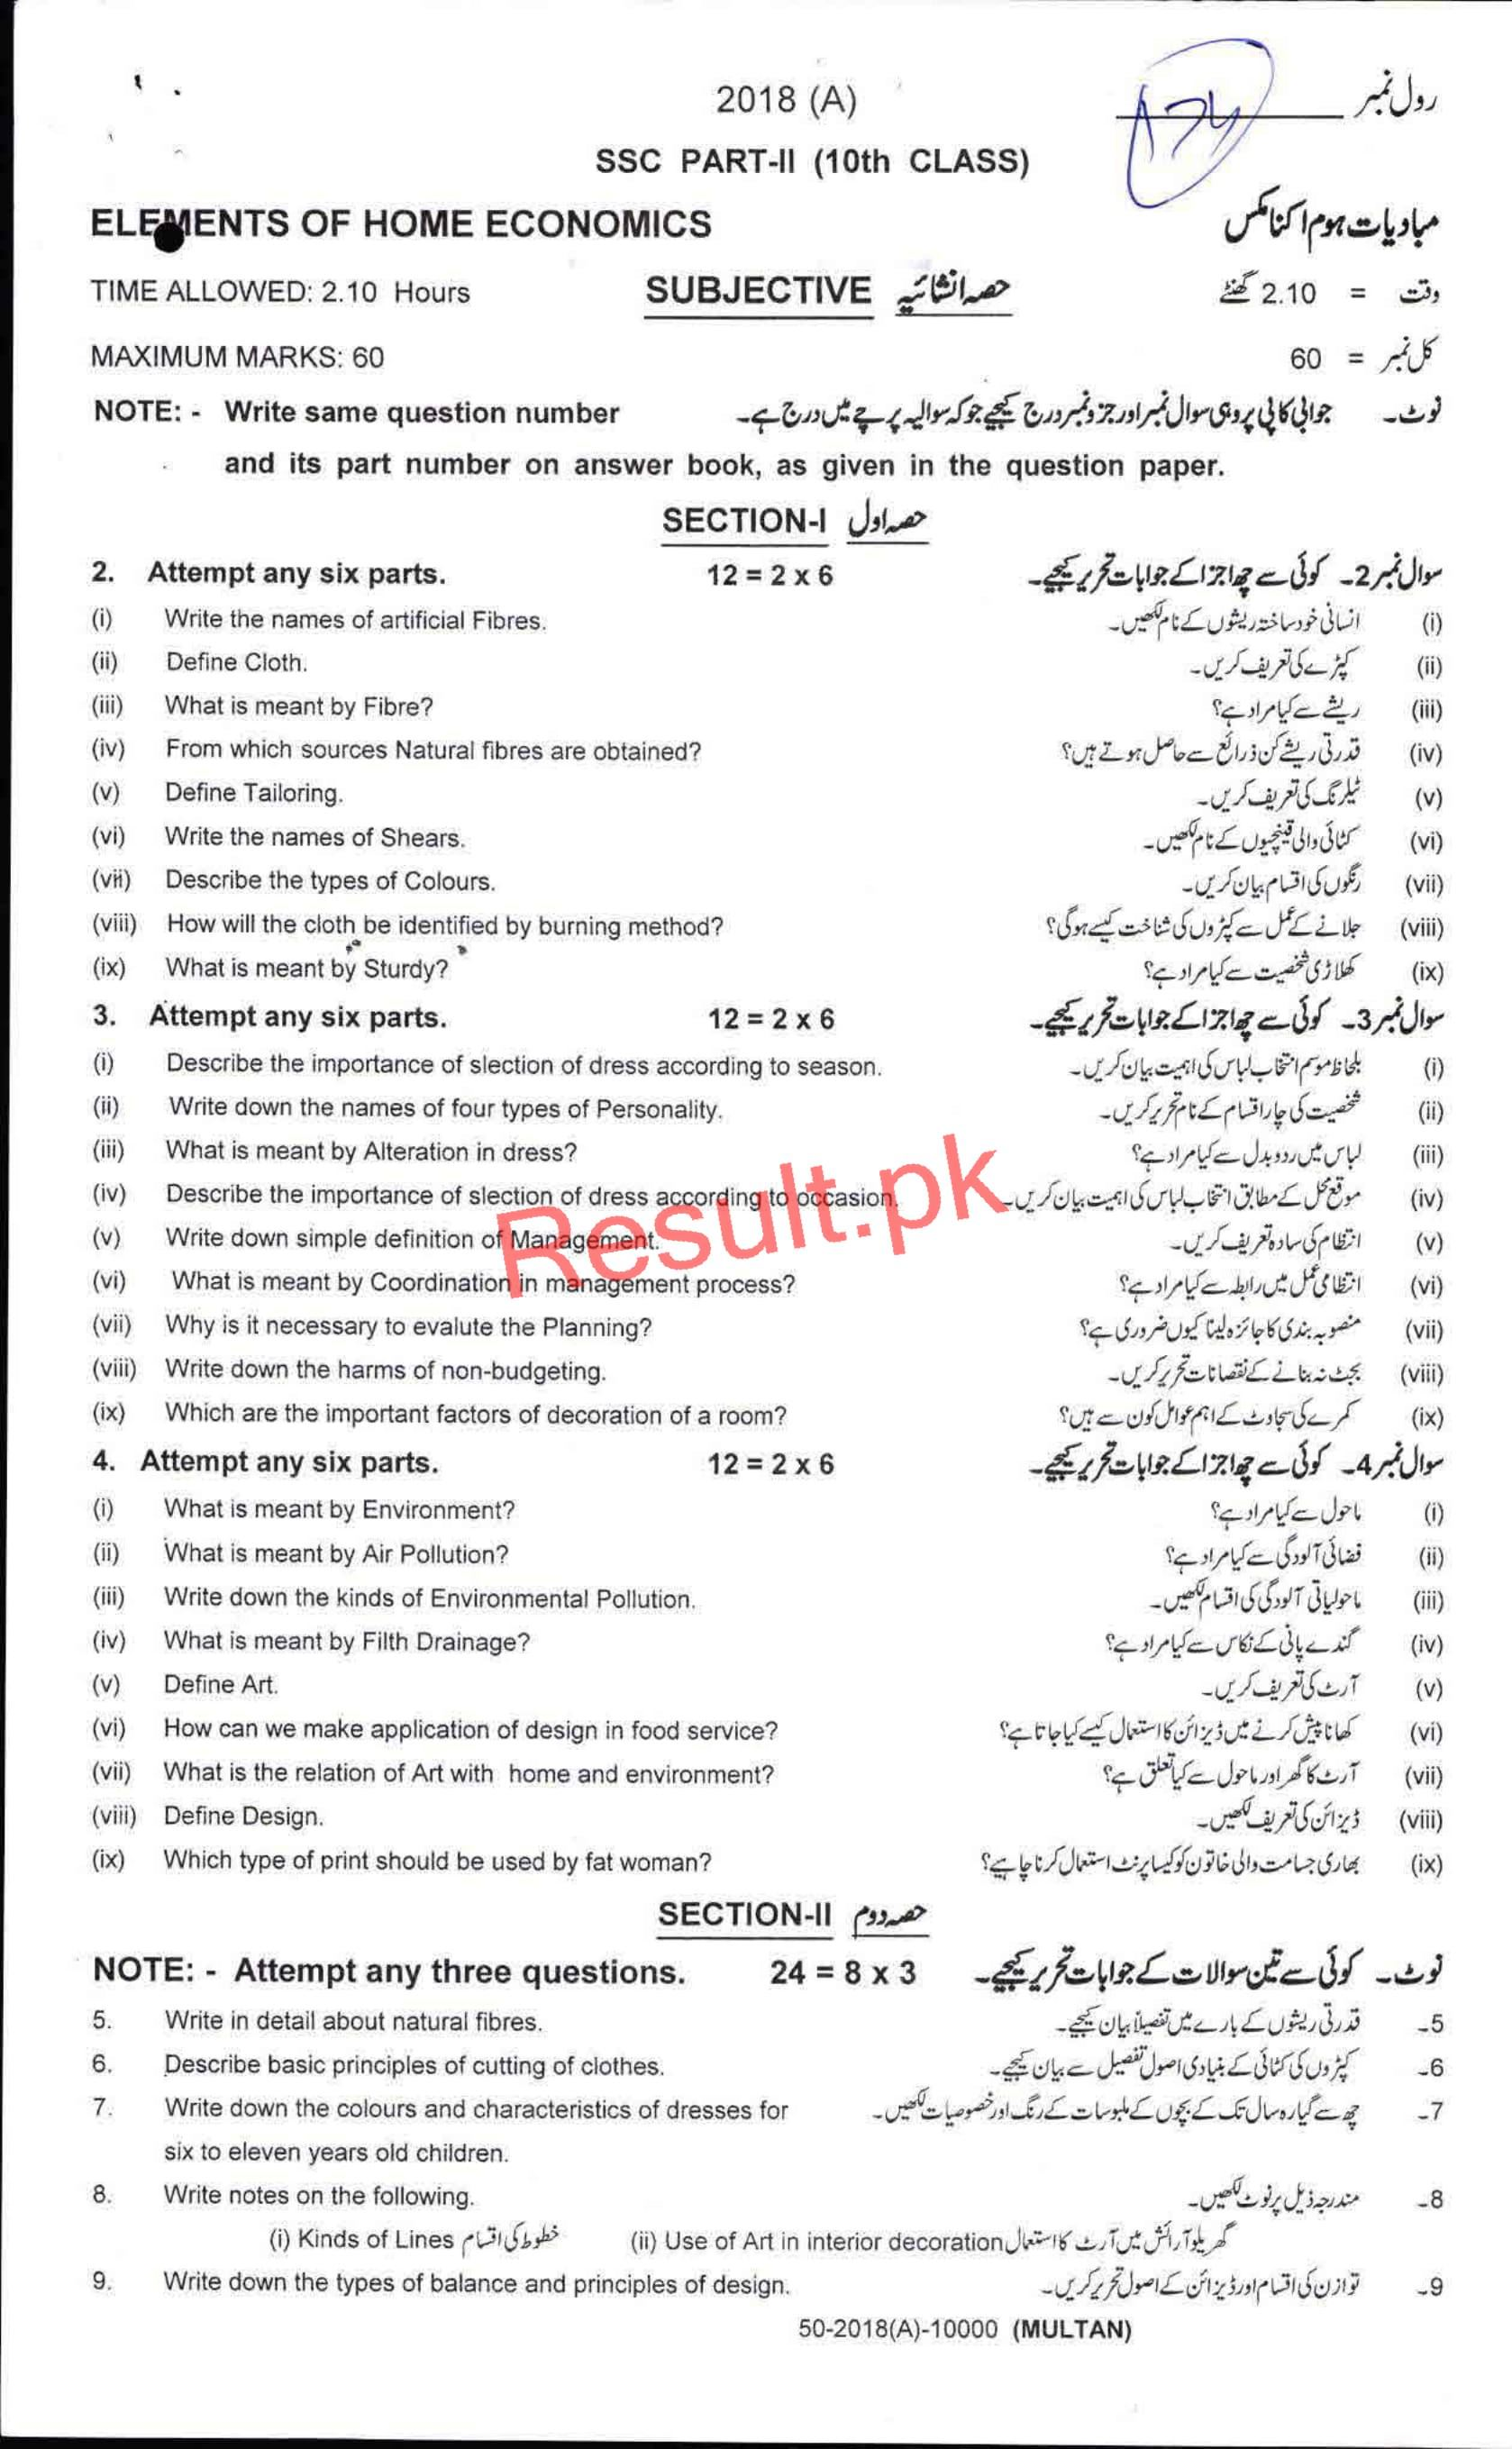 BISE Multan Board Past Papers 2019 Matric, SSC Part 1 & 2, 9th